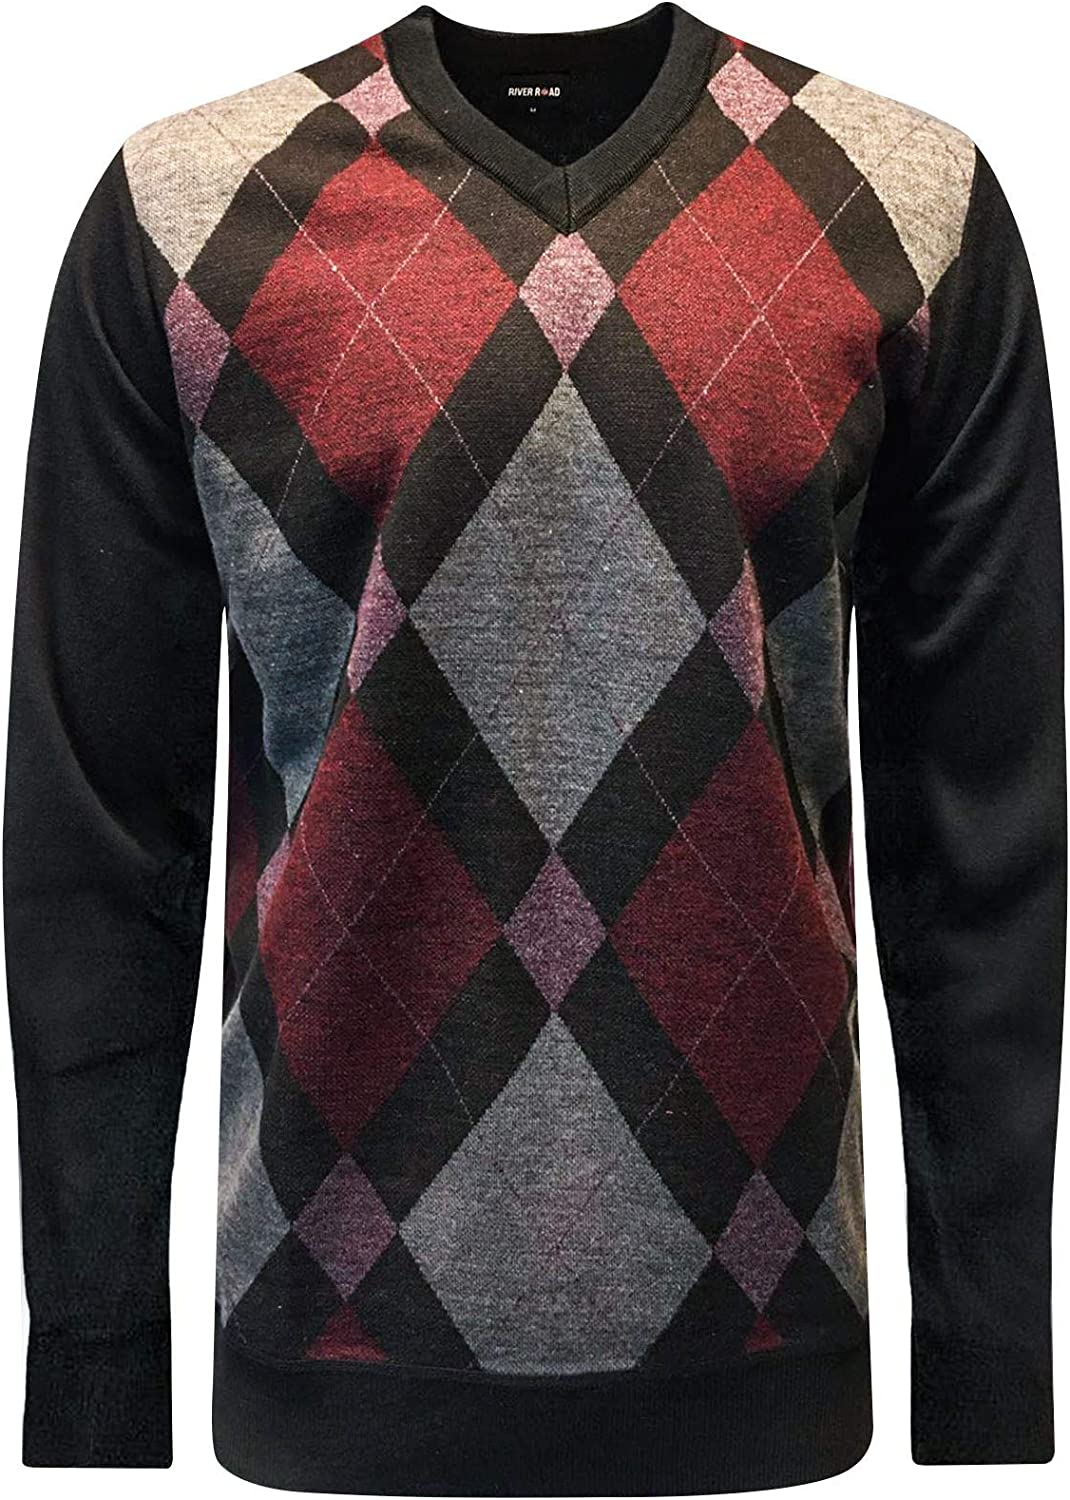 Mens Diamond Argyle River Road Jumper Knitted V Neck Sweater Pullover Soft Top